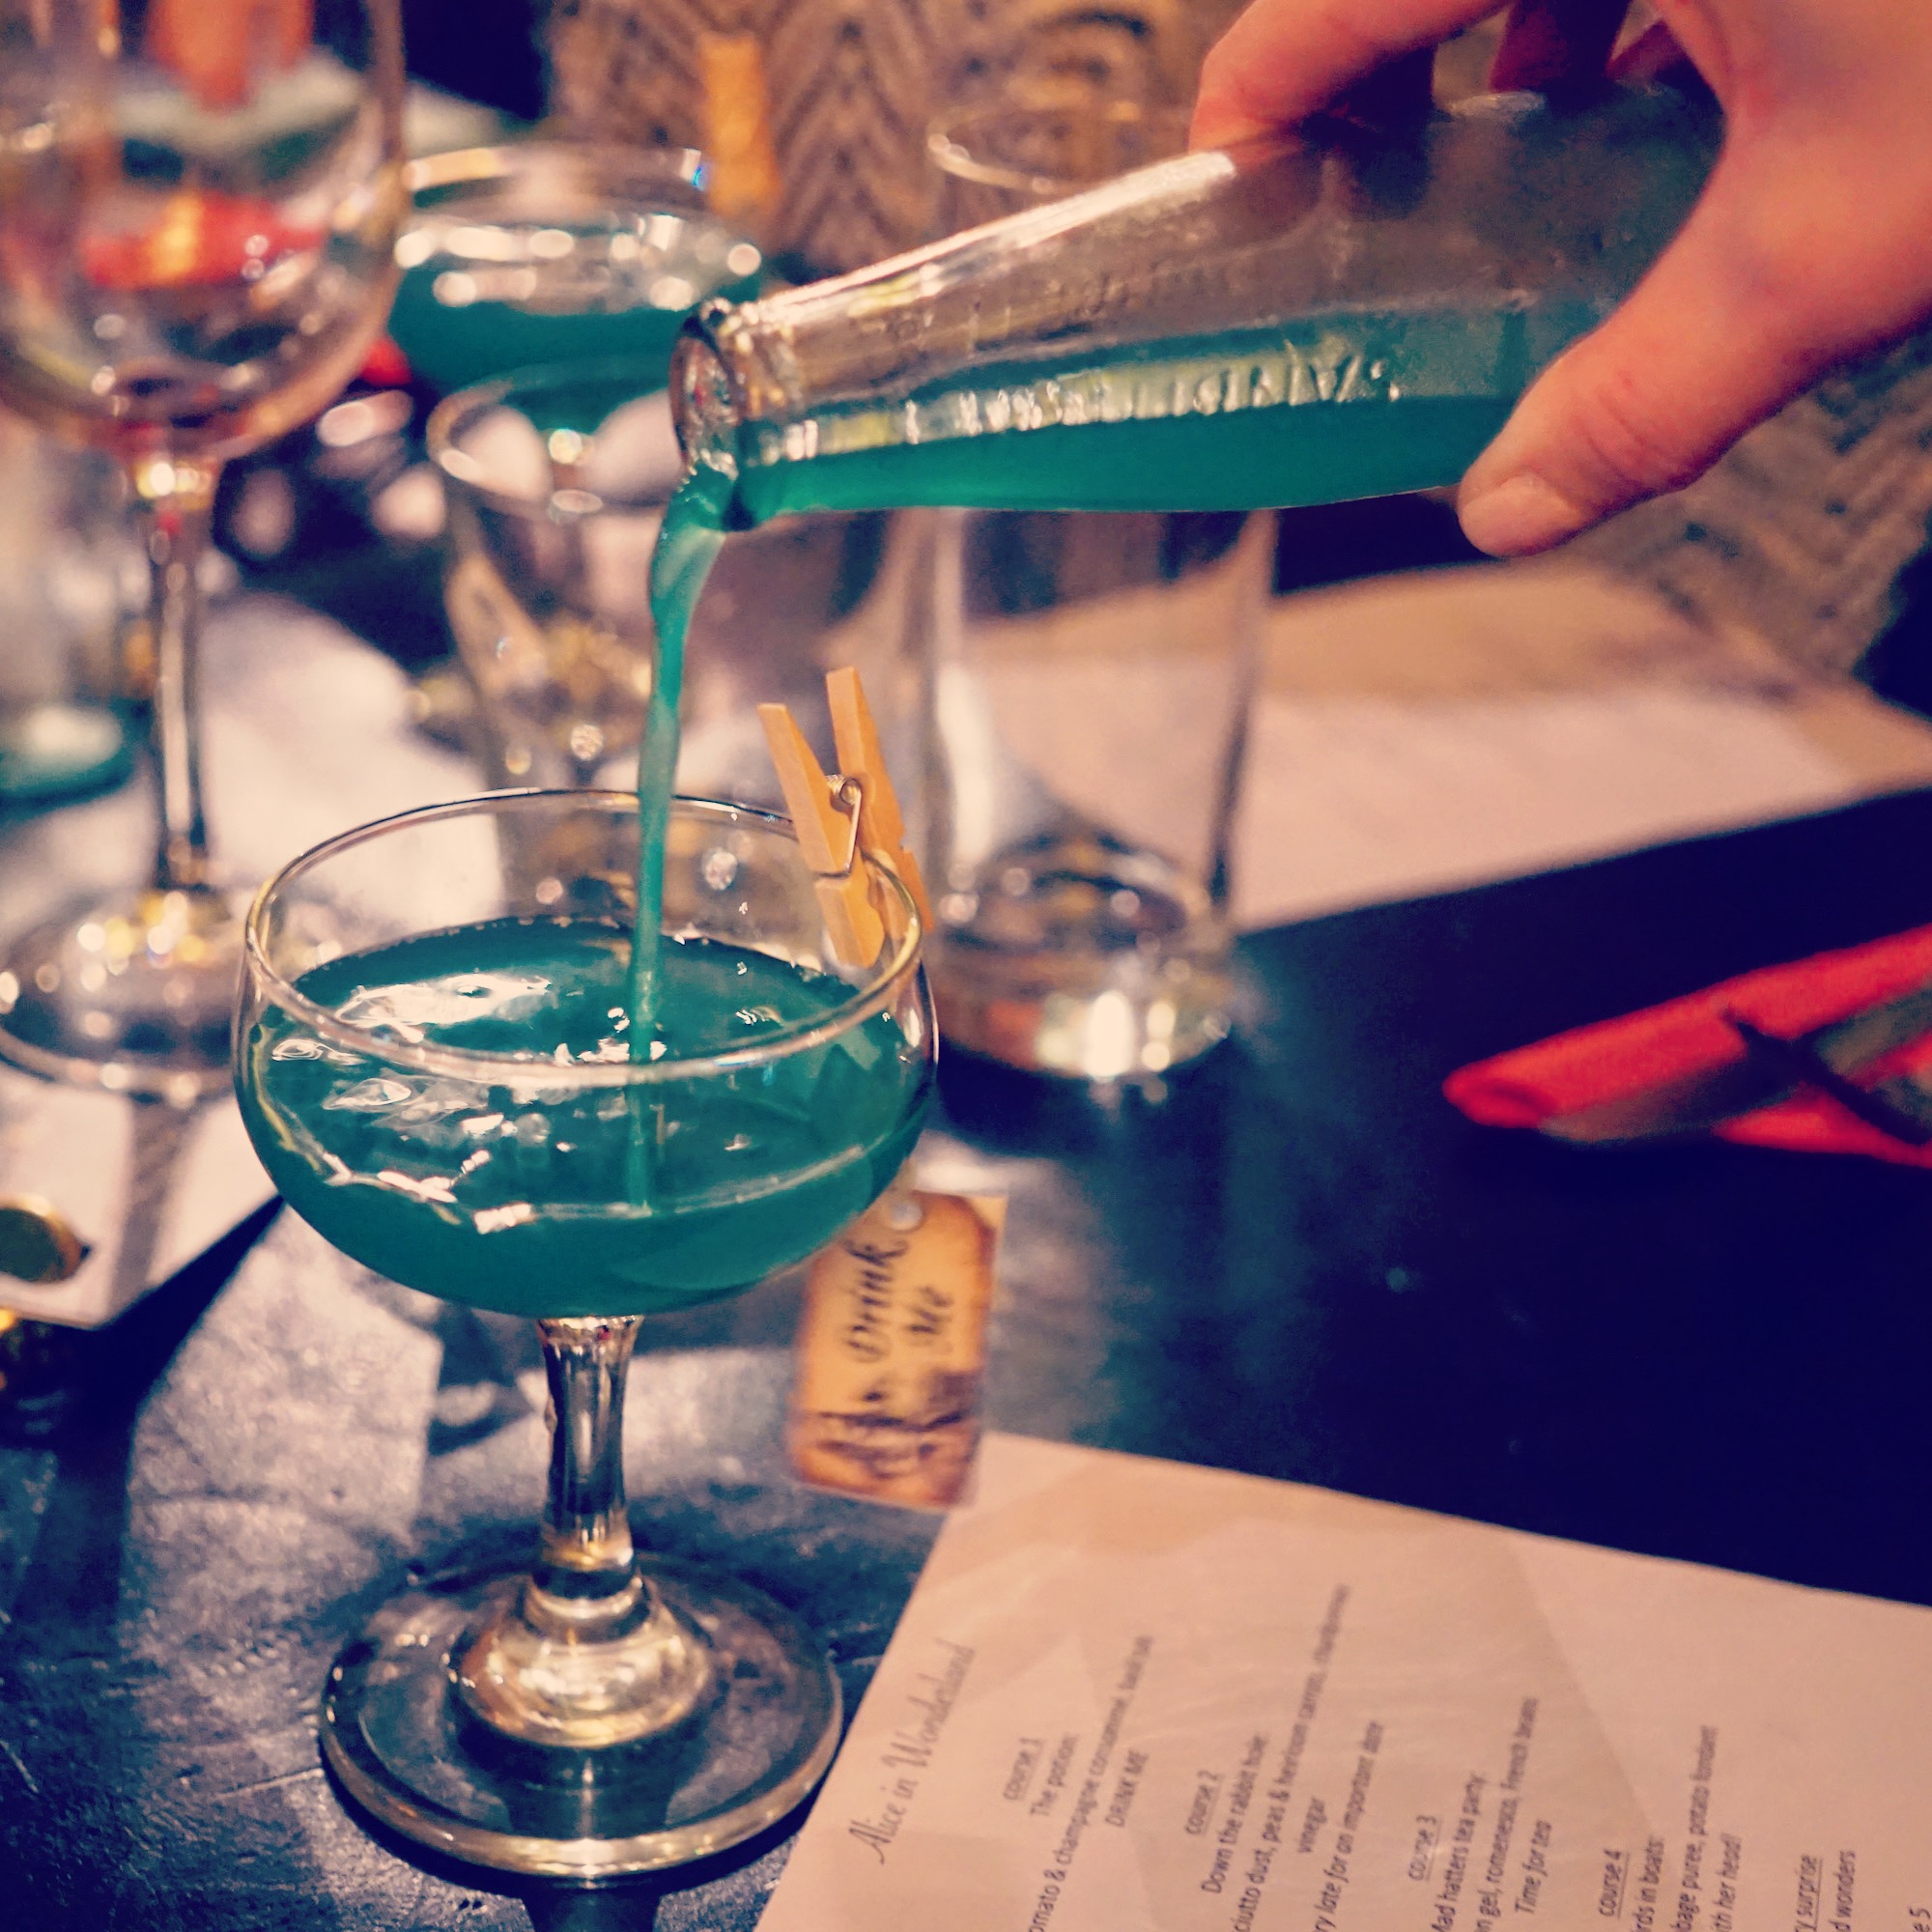 "<p style=""text-align: center;""><em><strong>""Now this is curious! What could a rabbit possibly be late for?""</strong></em></p>